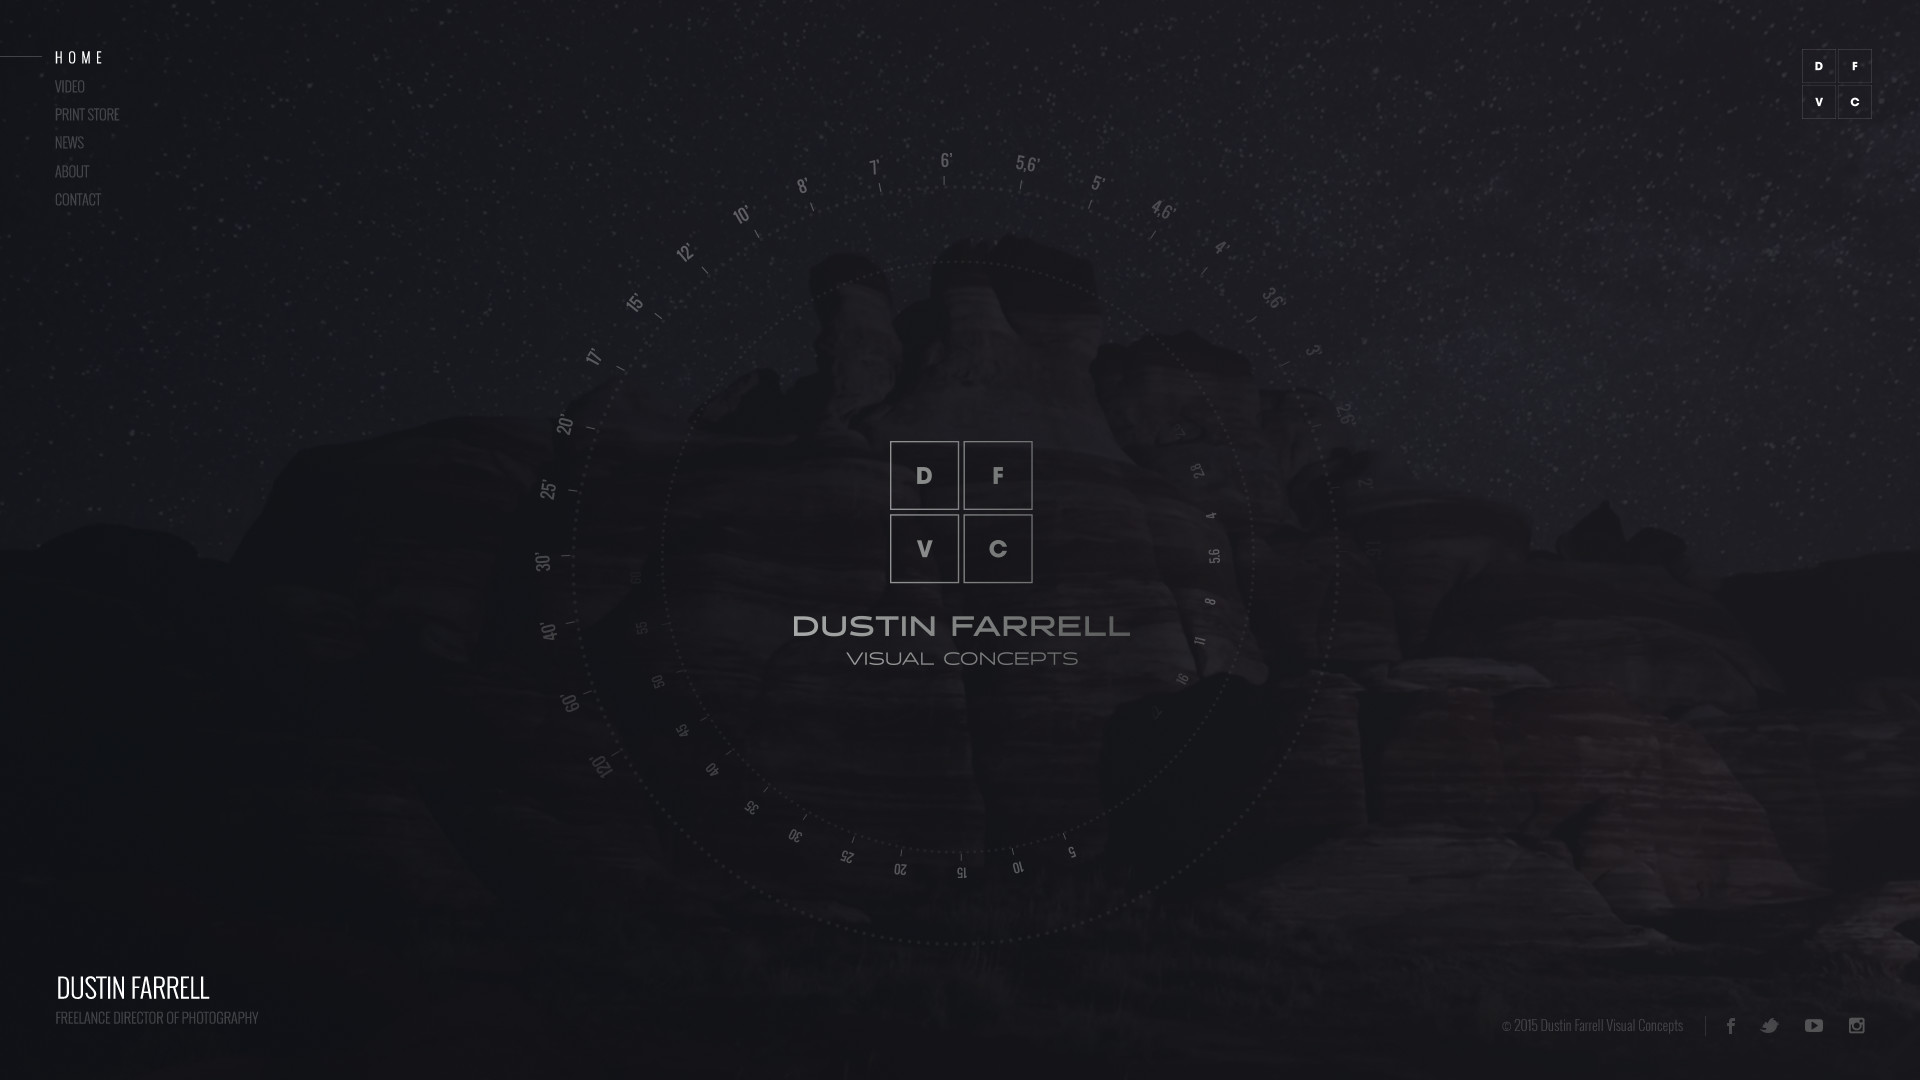 Dustin Farrell Website Design Preview